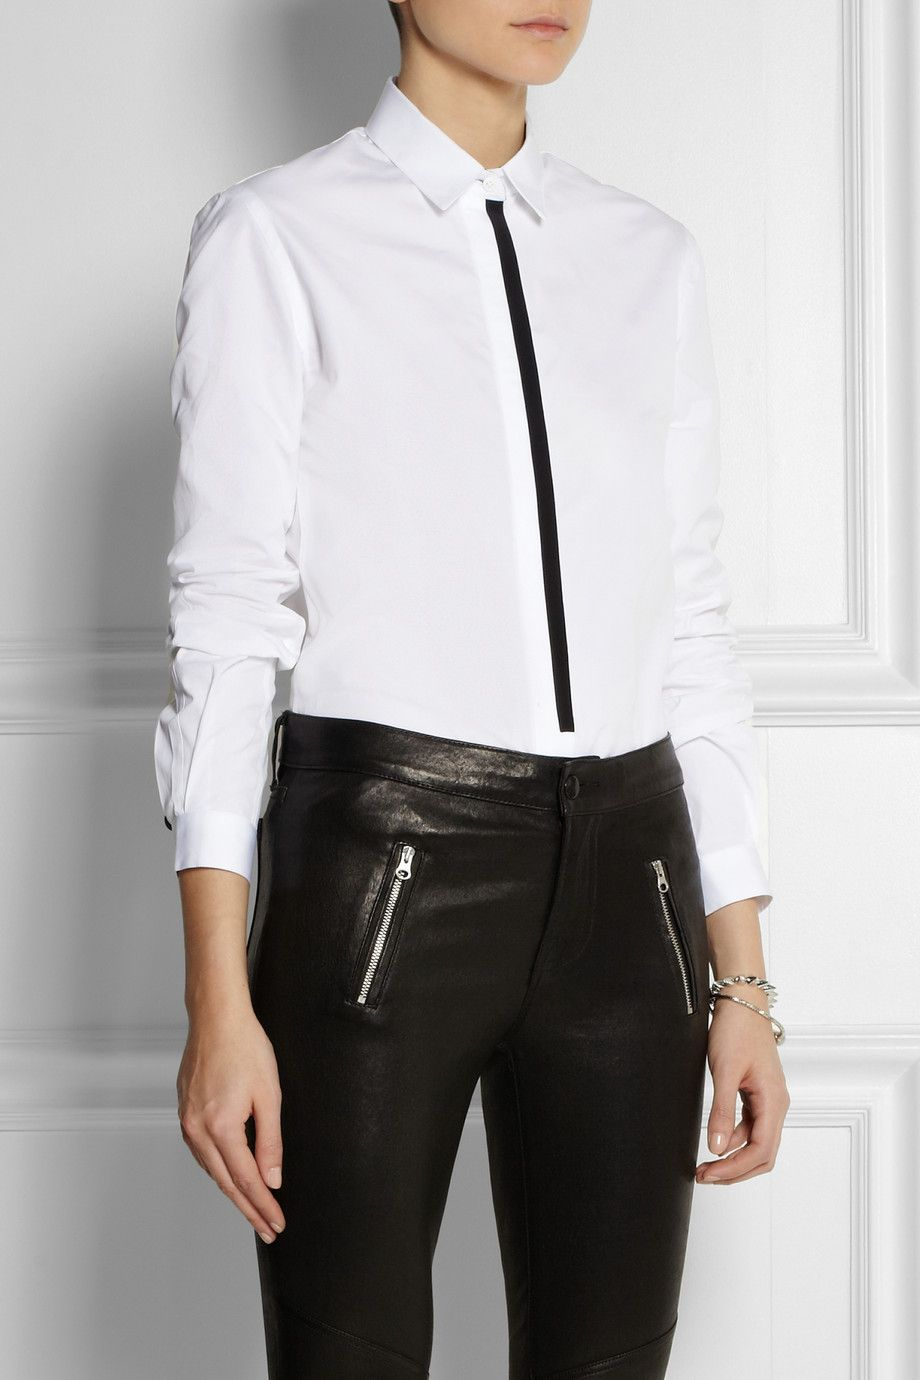 Joseph | Jin two-tone cotton-poplin shirt | NET-A-PORTER.COM